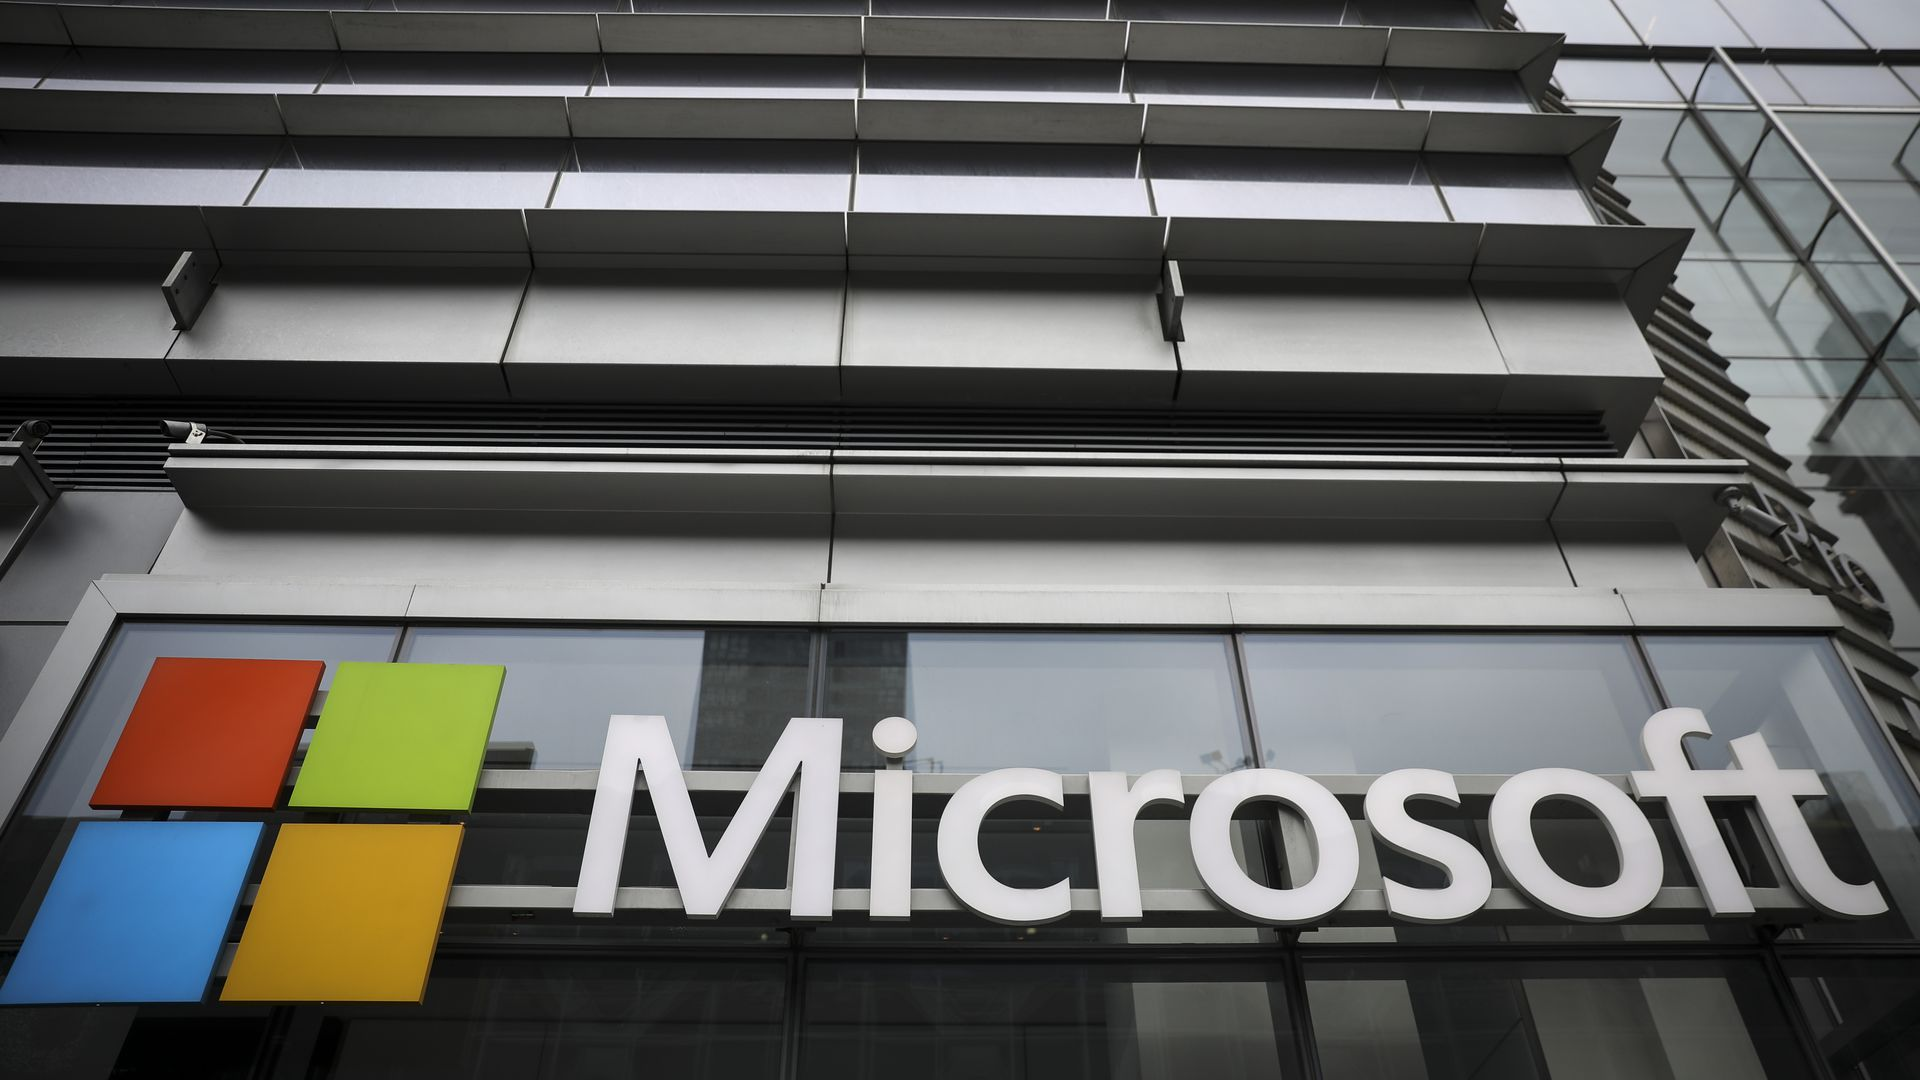 Microsoft name and Windows logo on side of a modern office building